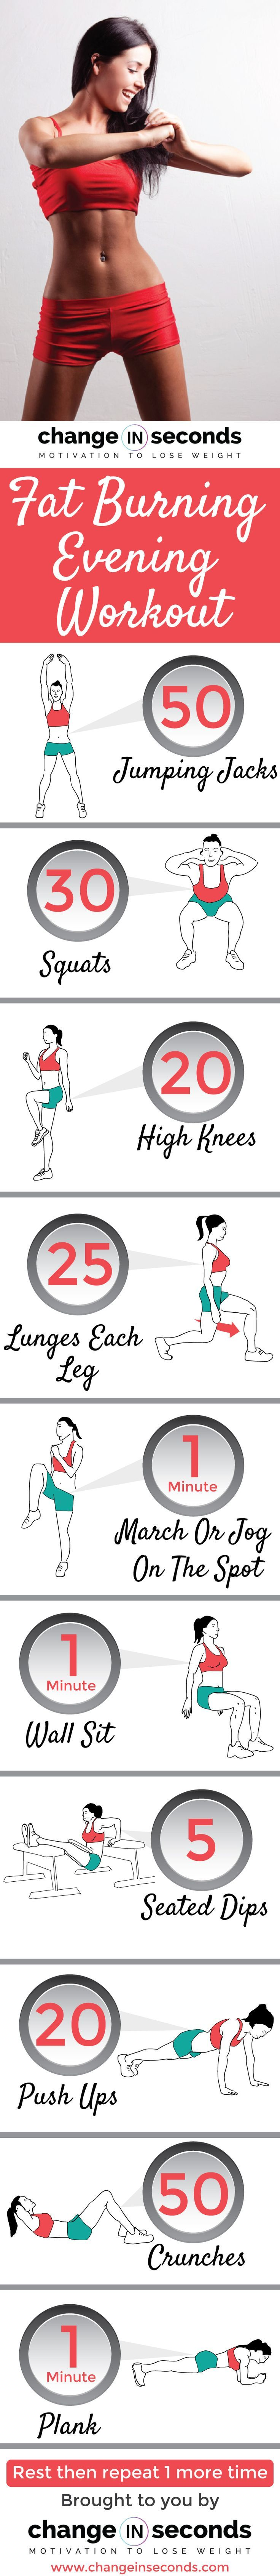 Fat Burning Evening Workout Burn Huge Amount Of Fat (Download PDF) is part of Evening workout - Our Fat Burning Evening Workout Download With A FREE Printable PDF Burns A Ridiculous Amount Of Fat That Will Create A Tight, Toned, Flab Free Body Fast!